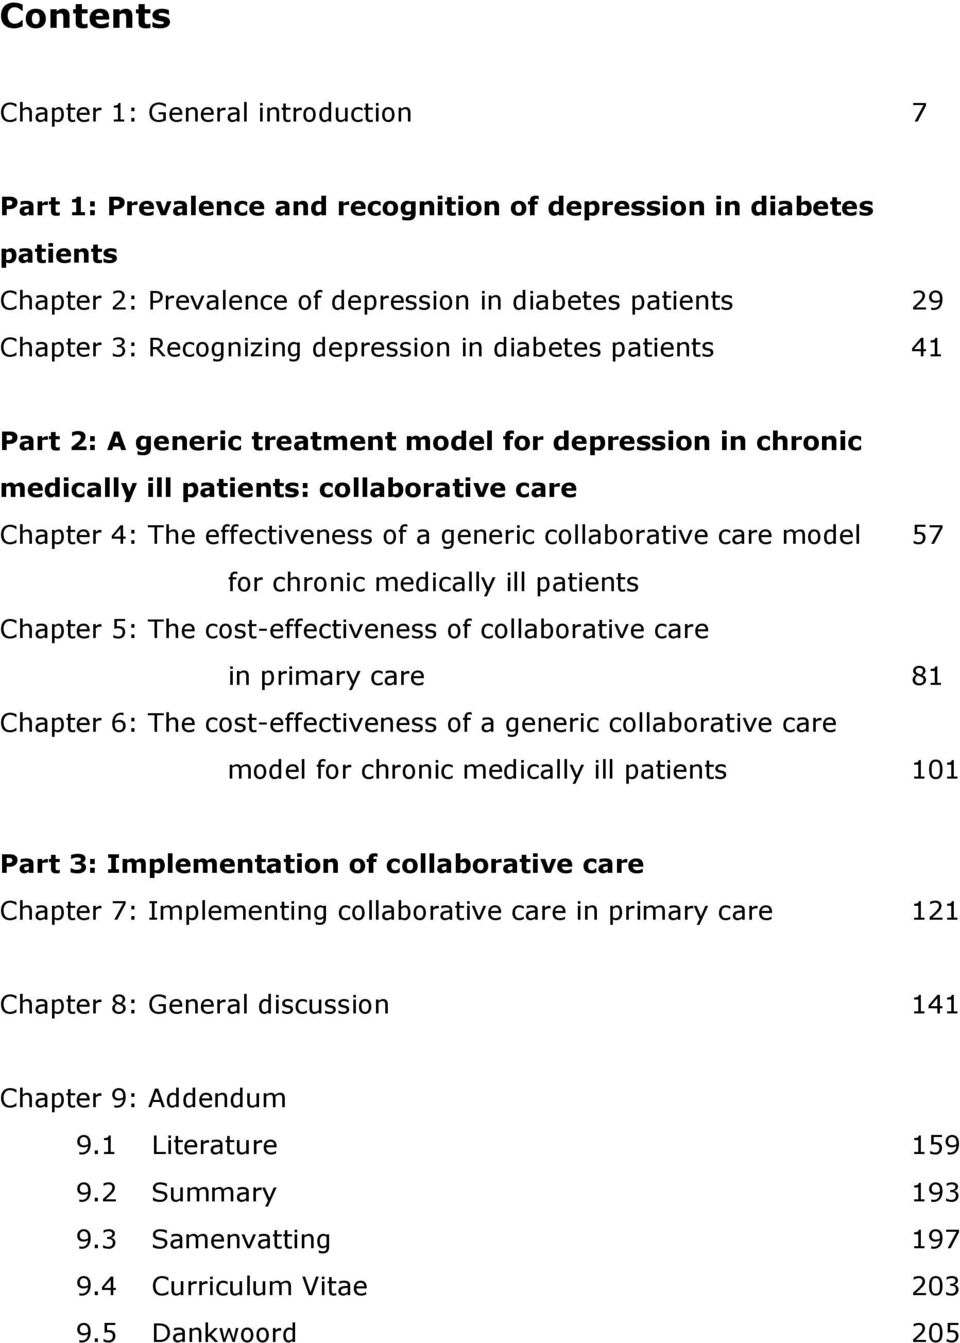 model 57 for chronic medically ill patients Chapter 5: The cost-effectiveness of collaborative care in primary care 81 Chapter 6: The cost-effectiveness of a generic collaborative care model for